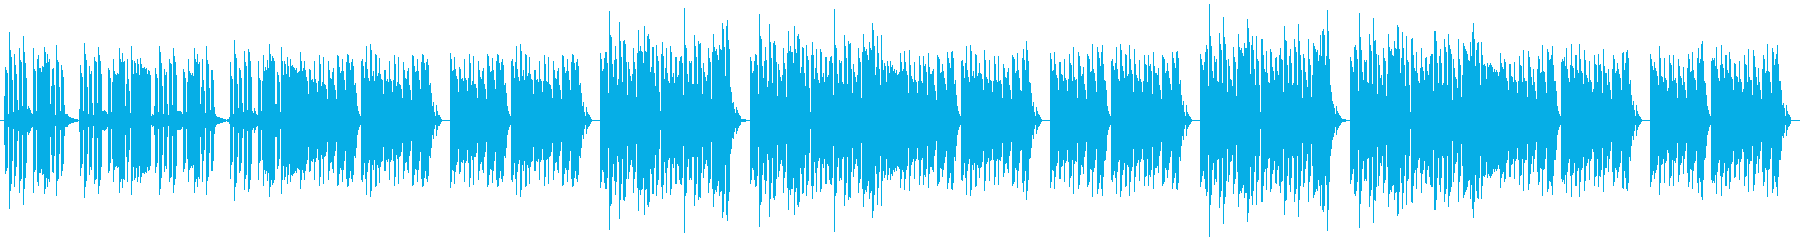 Loose / Animal / Kids / Comical / Recorder's reproduced waveform